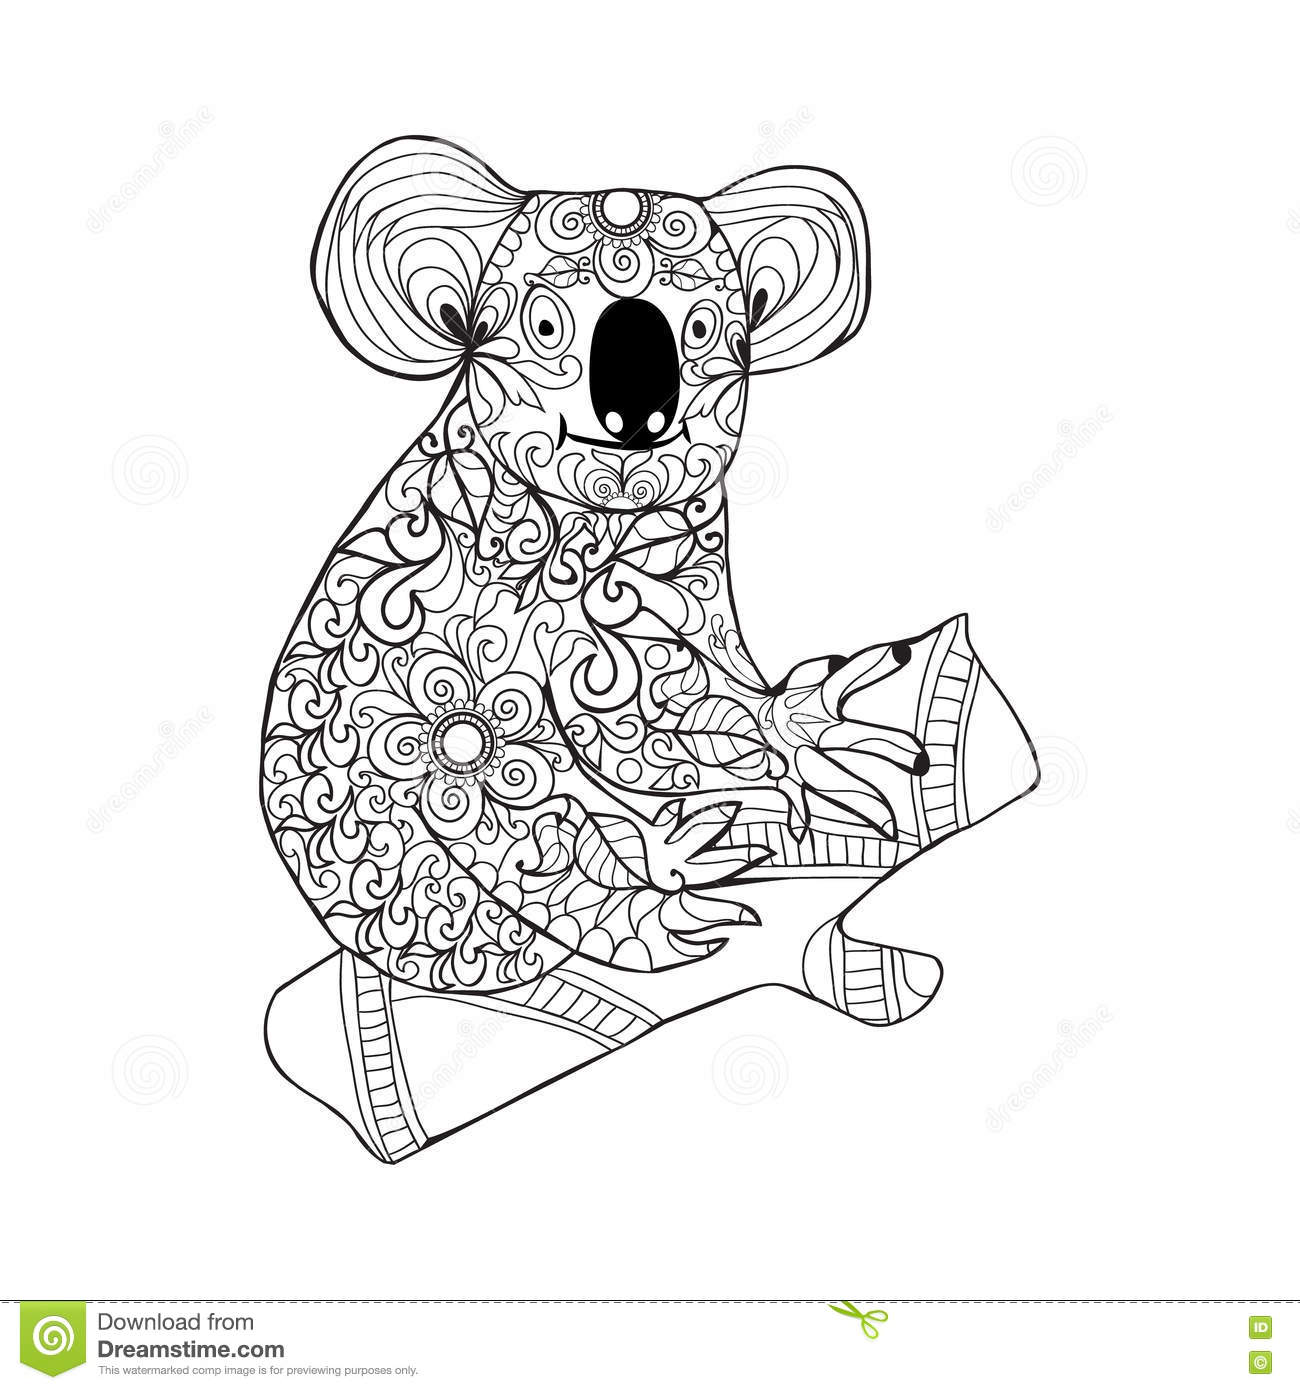 Koala Black White Hand Drawn Doodle Animal For Coloring